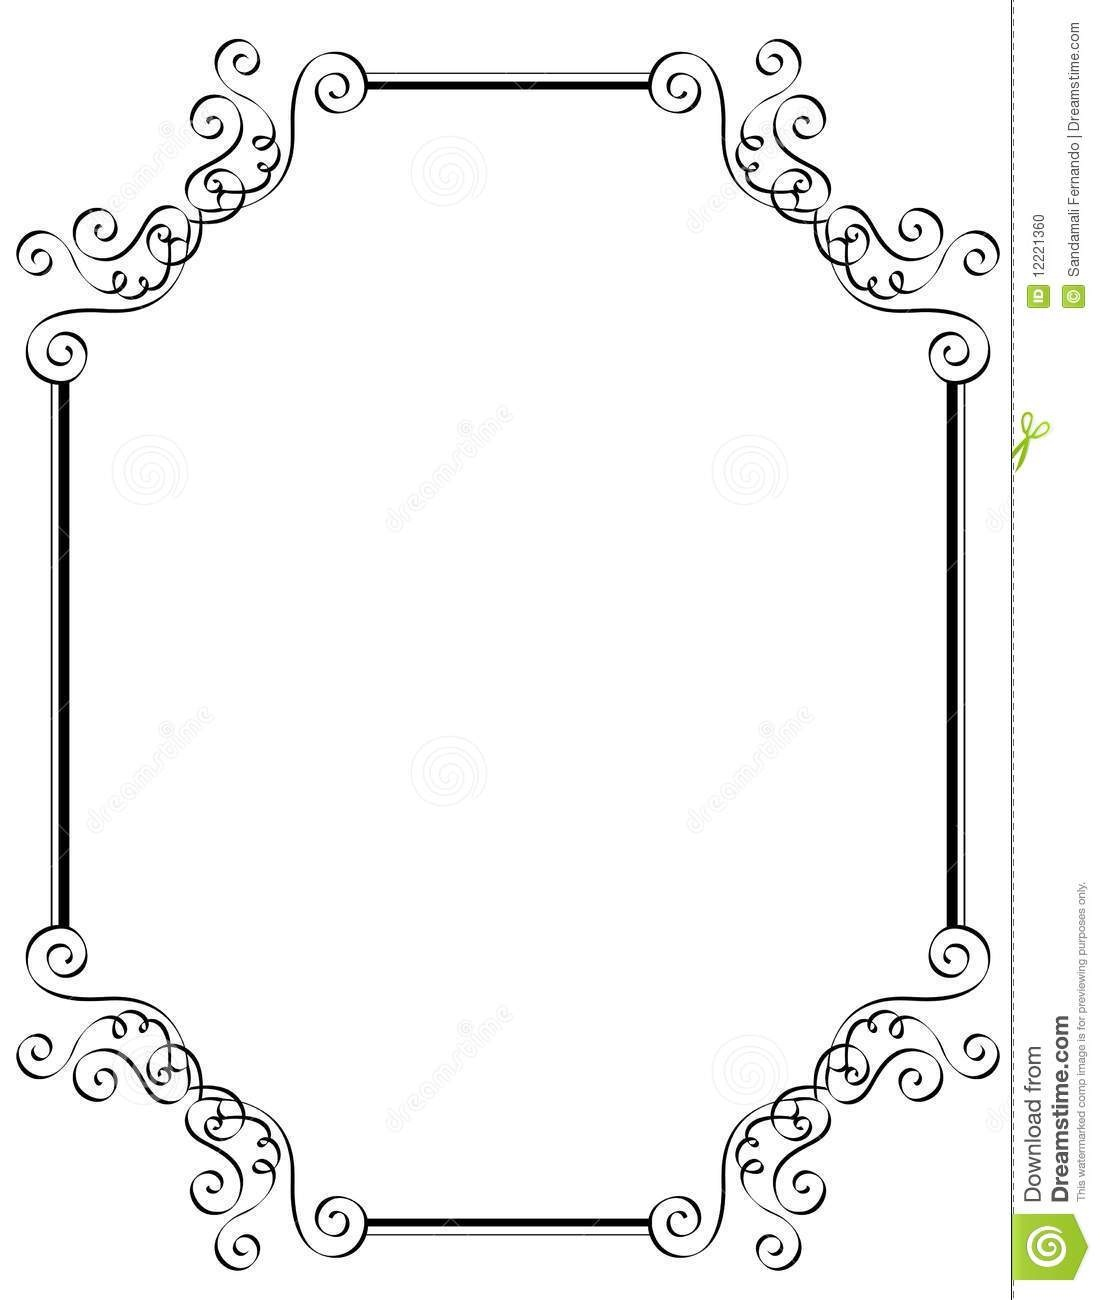 Free Printable Wedding Clipart Borders 2 » Clipart Portal - Free Printable Wedding Clipart Borders